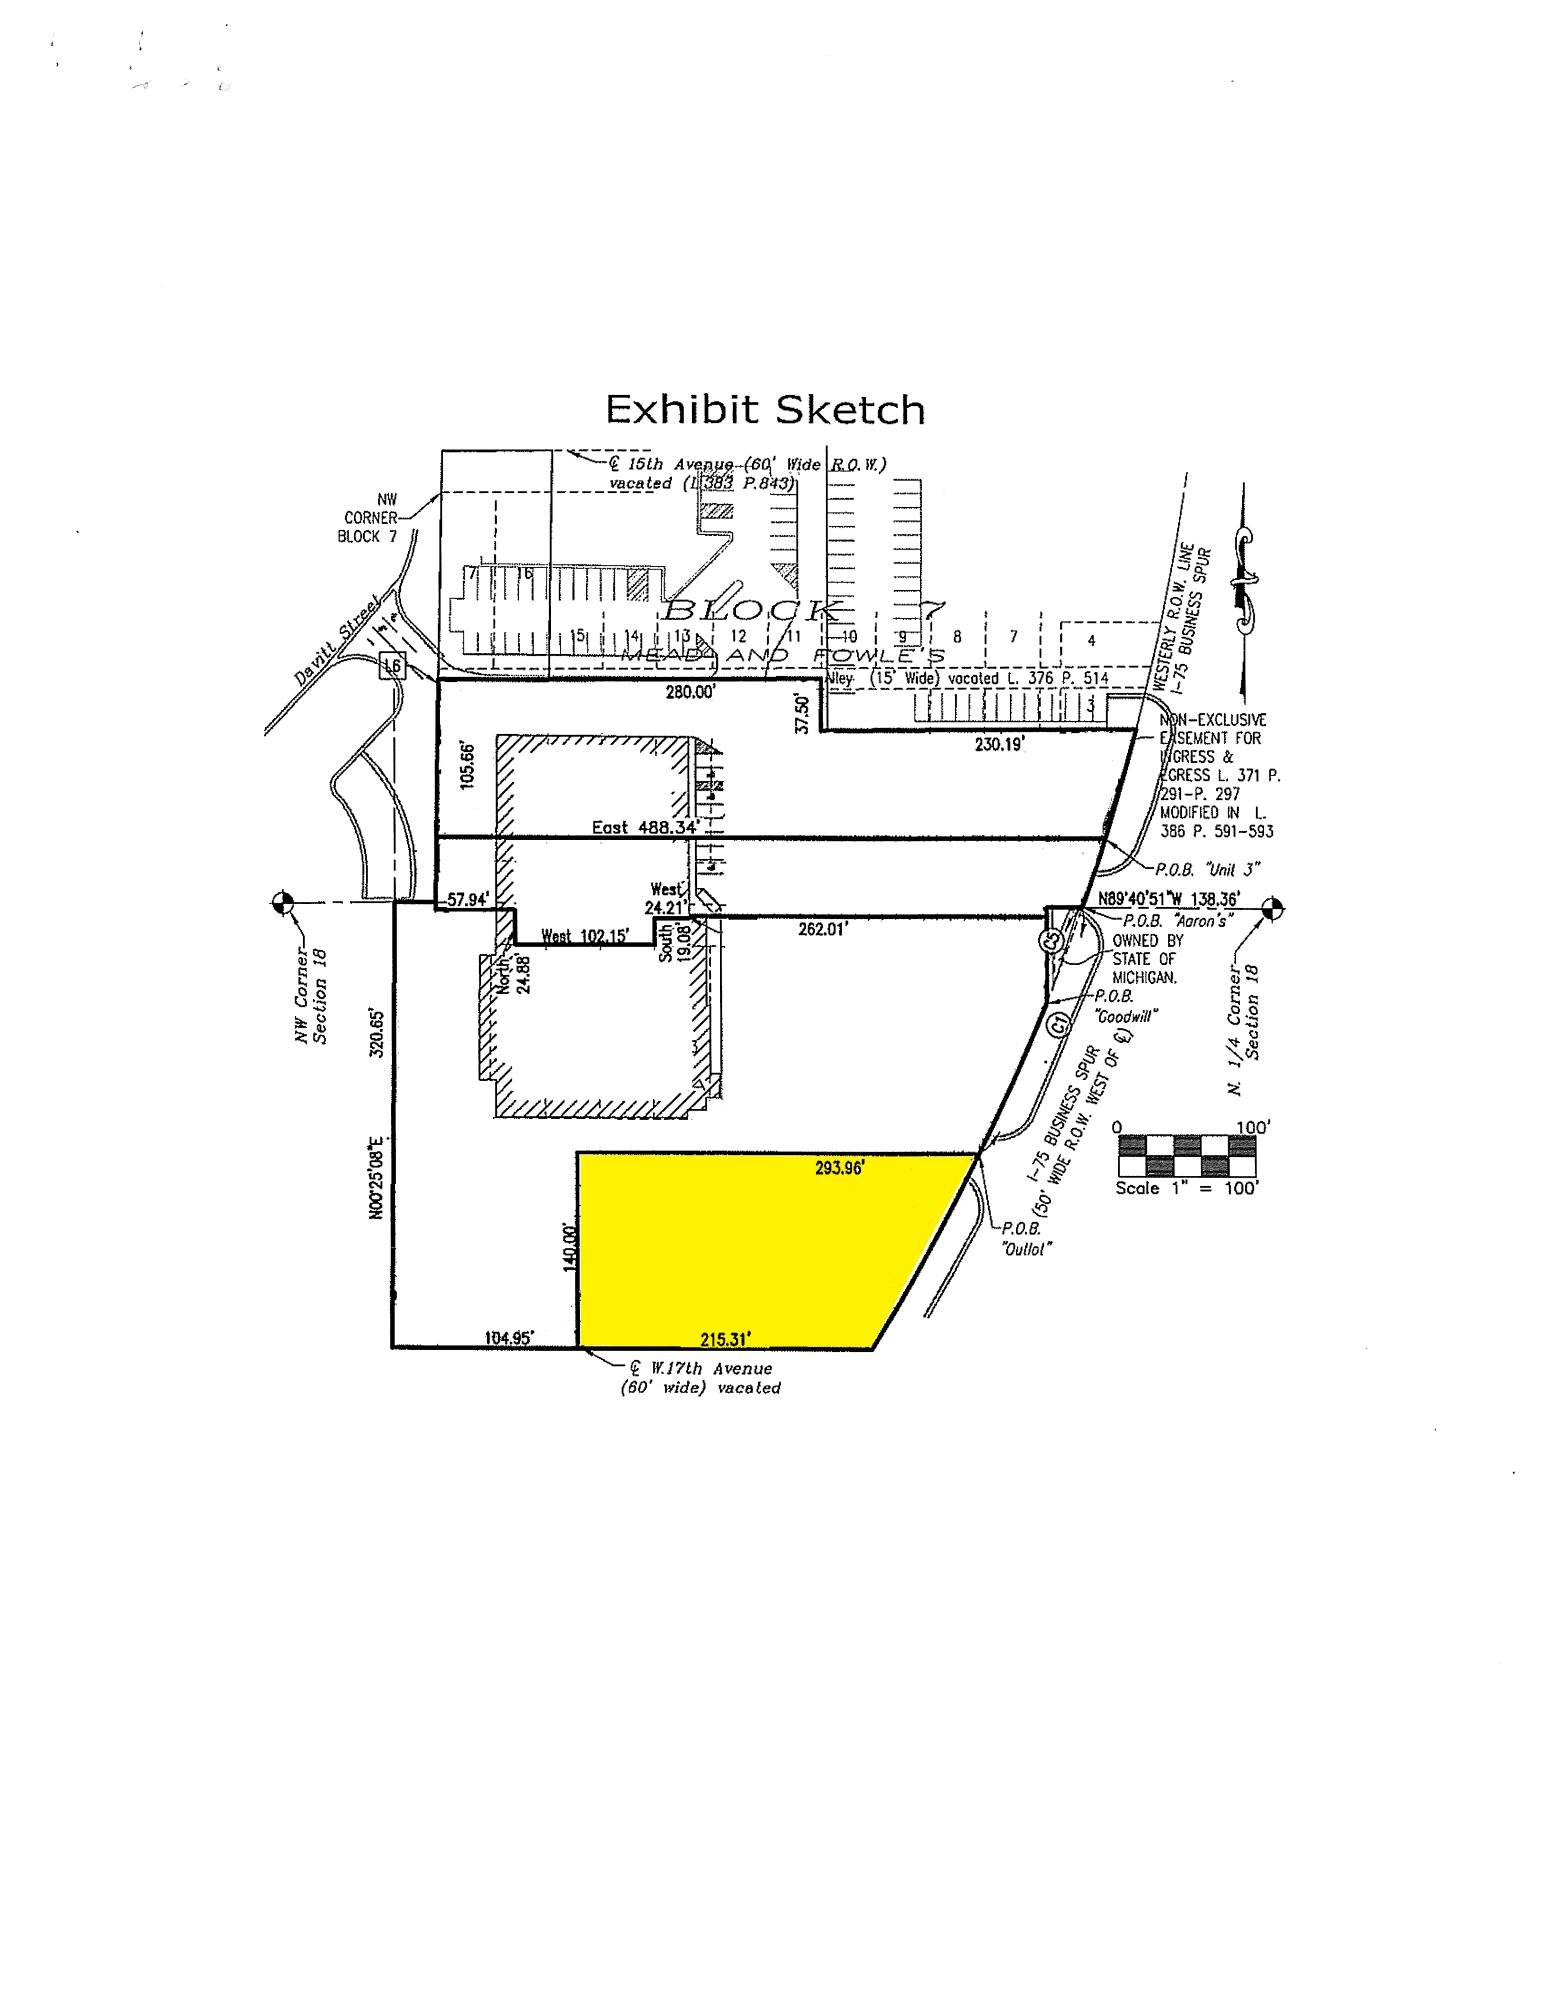 2510 Ashmun St Sault Ste Marie Mi 49783 Smith Company Real Estate Traffic Light State Diagram Commercial Land At Intersection Of 2 Major Highways With Easy Access To Highway 160 Ft Road Frontage